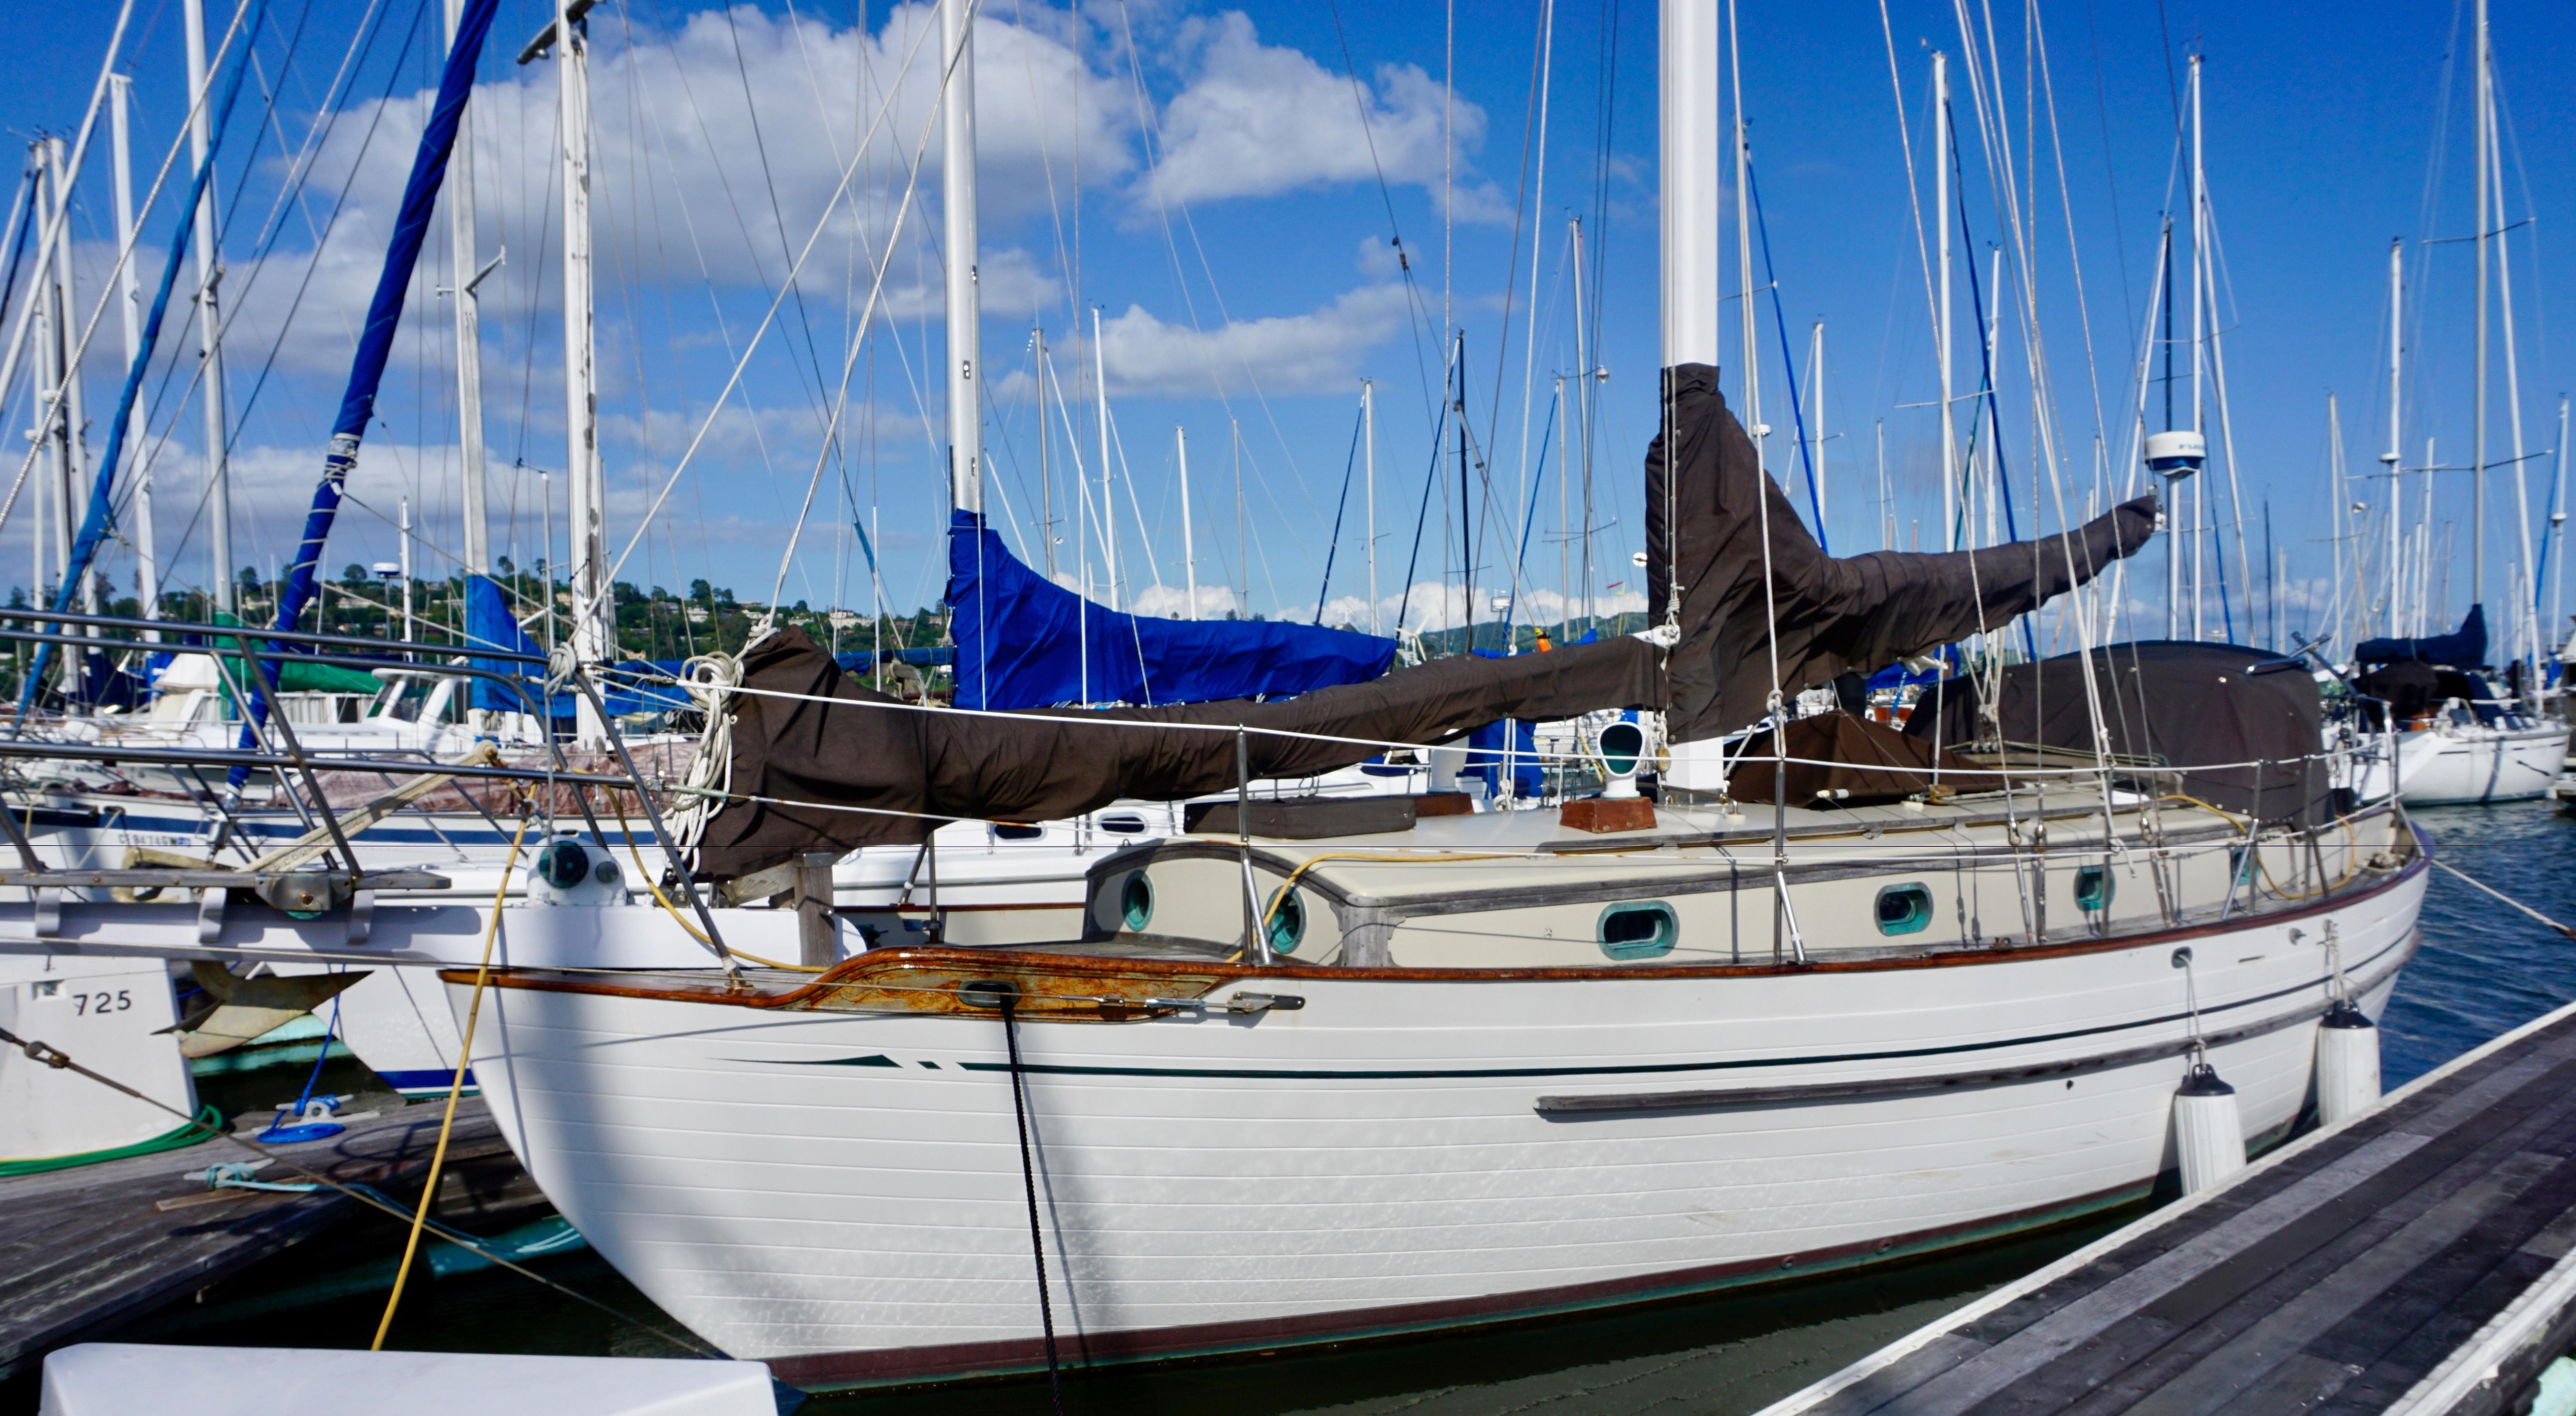 6204117_20170419124332849_1_XLARGE&w=6000&h=3299&t=1492634944000 1976 tayana 37 sail boat for sale www yachtworld com  at gsmportal.co